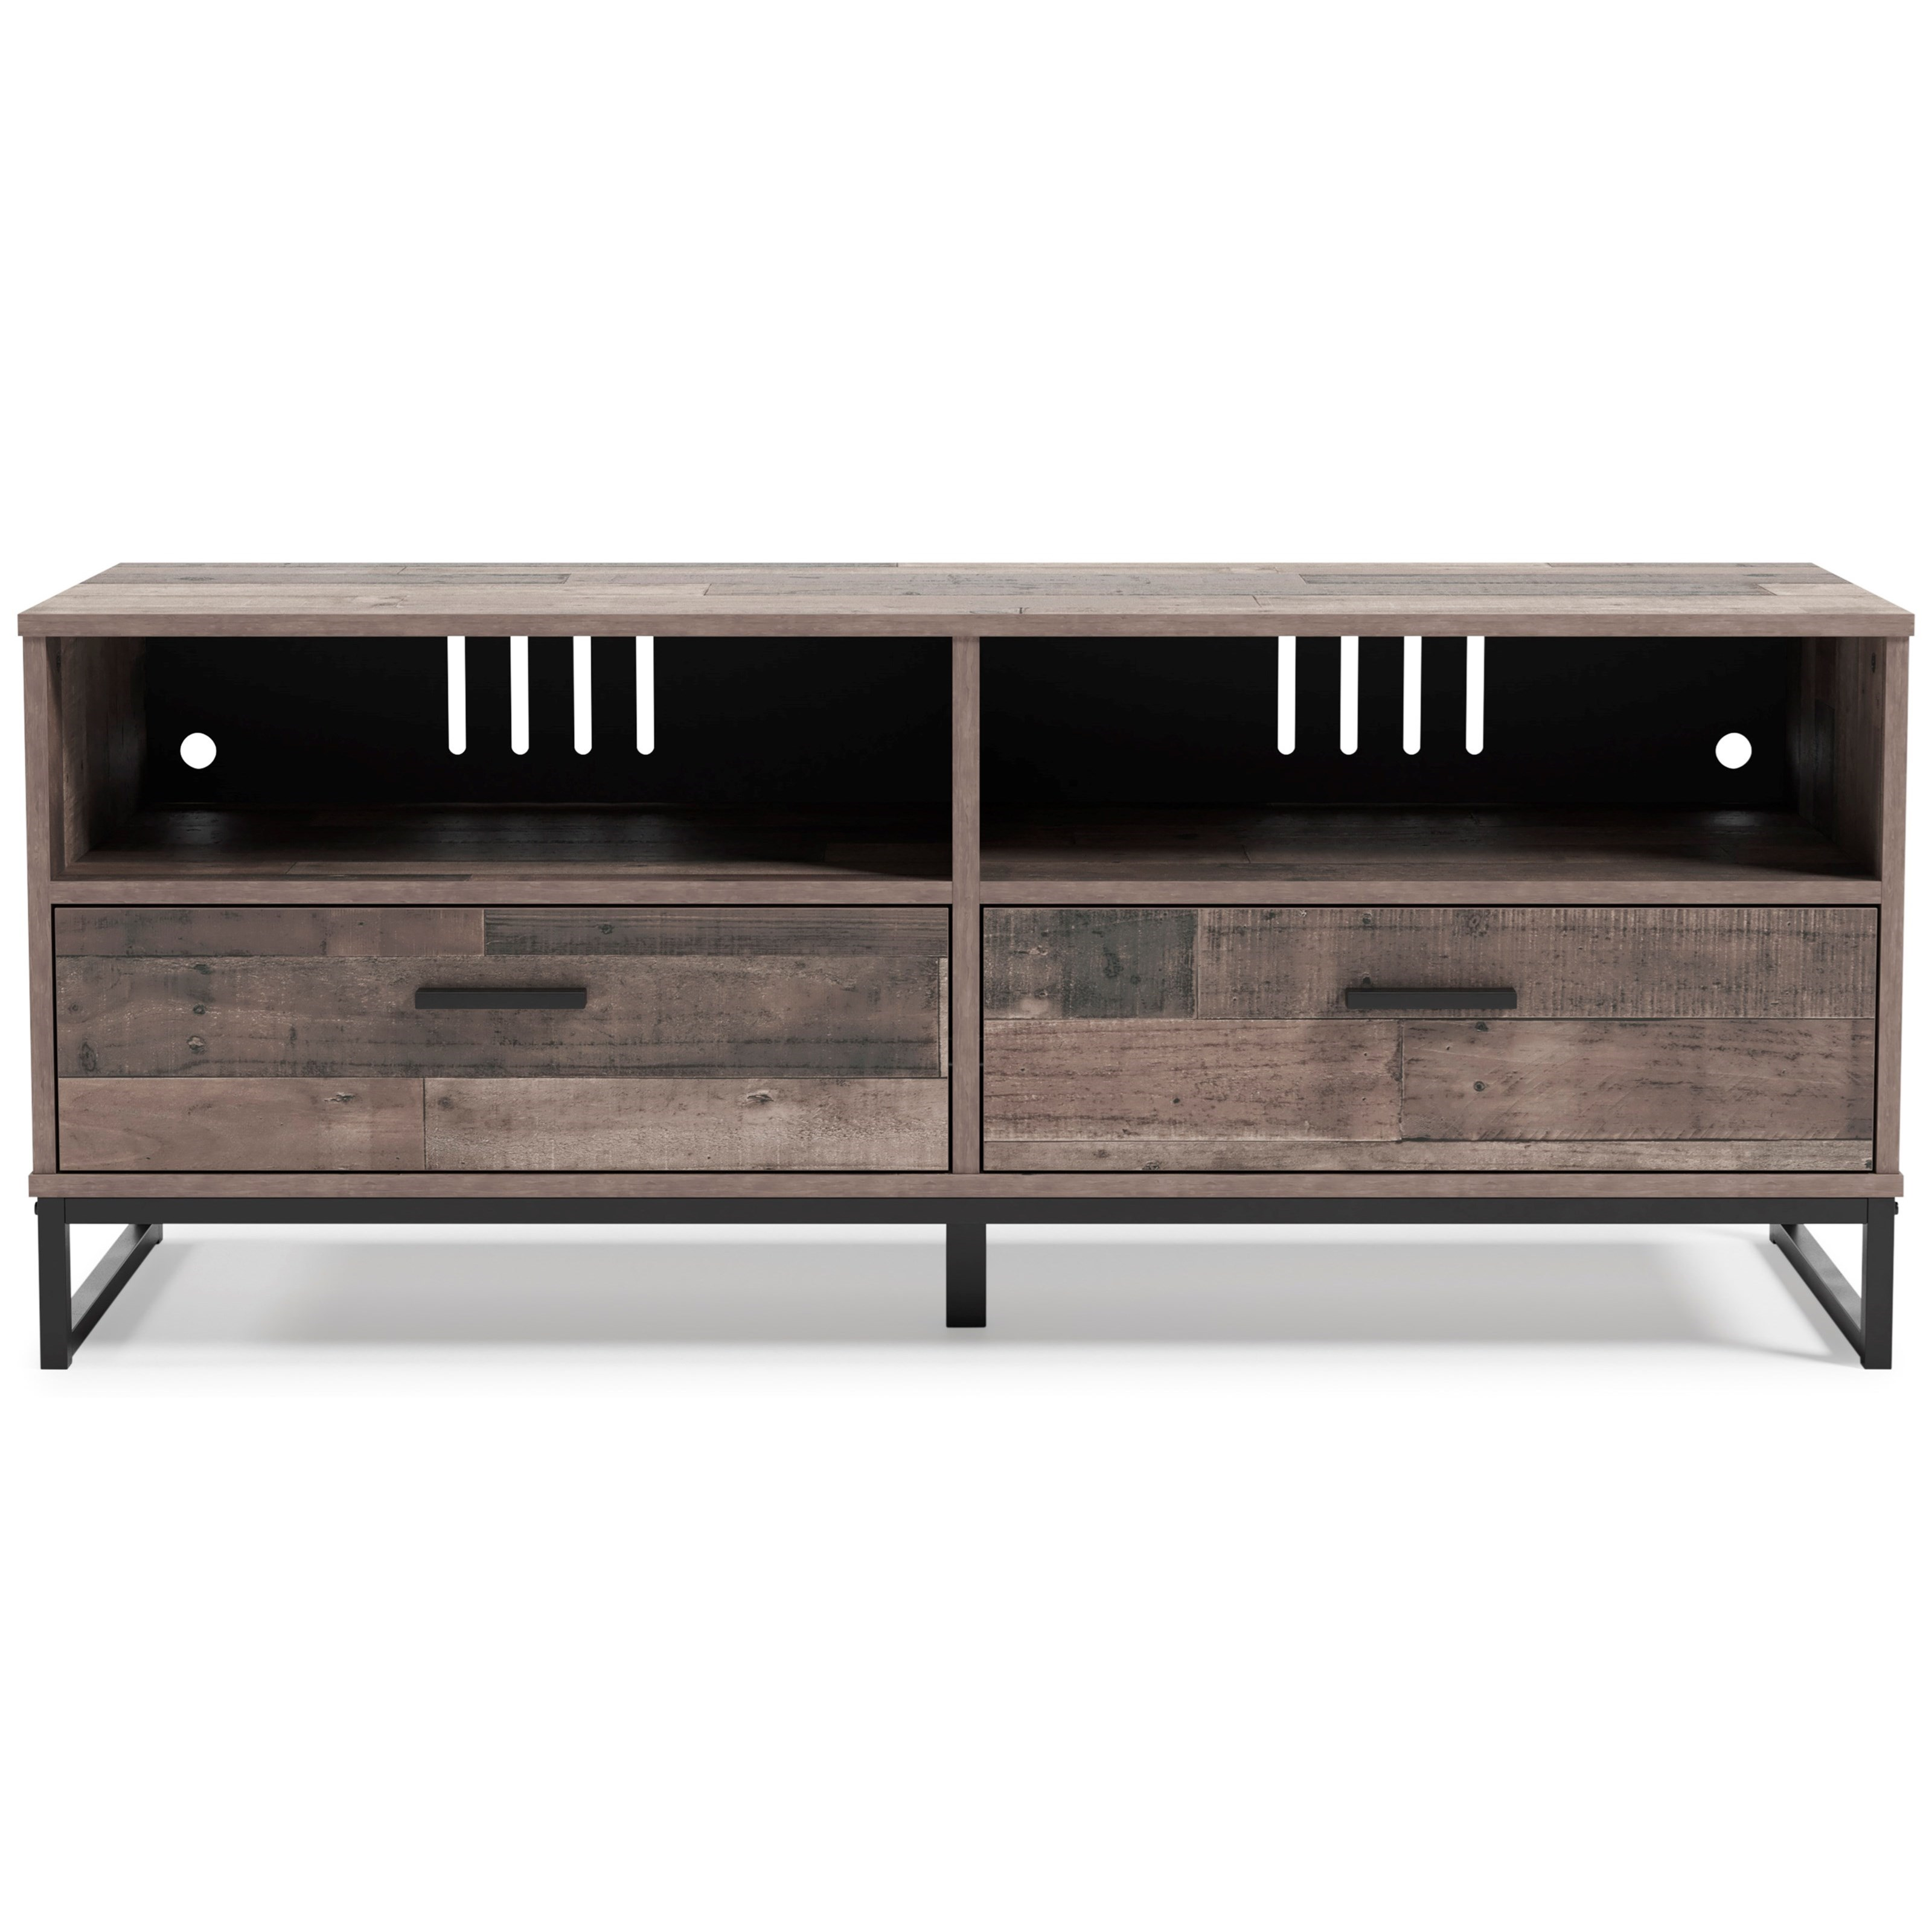 Neilsville Medium TV Stand by Signature Design by Ashley at Furniture Barn